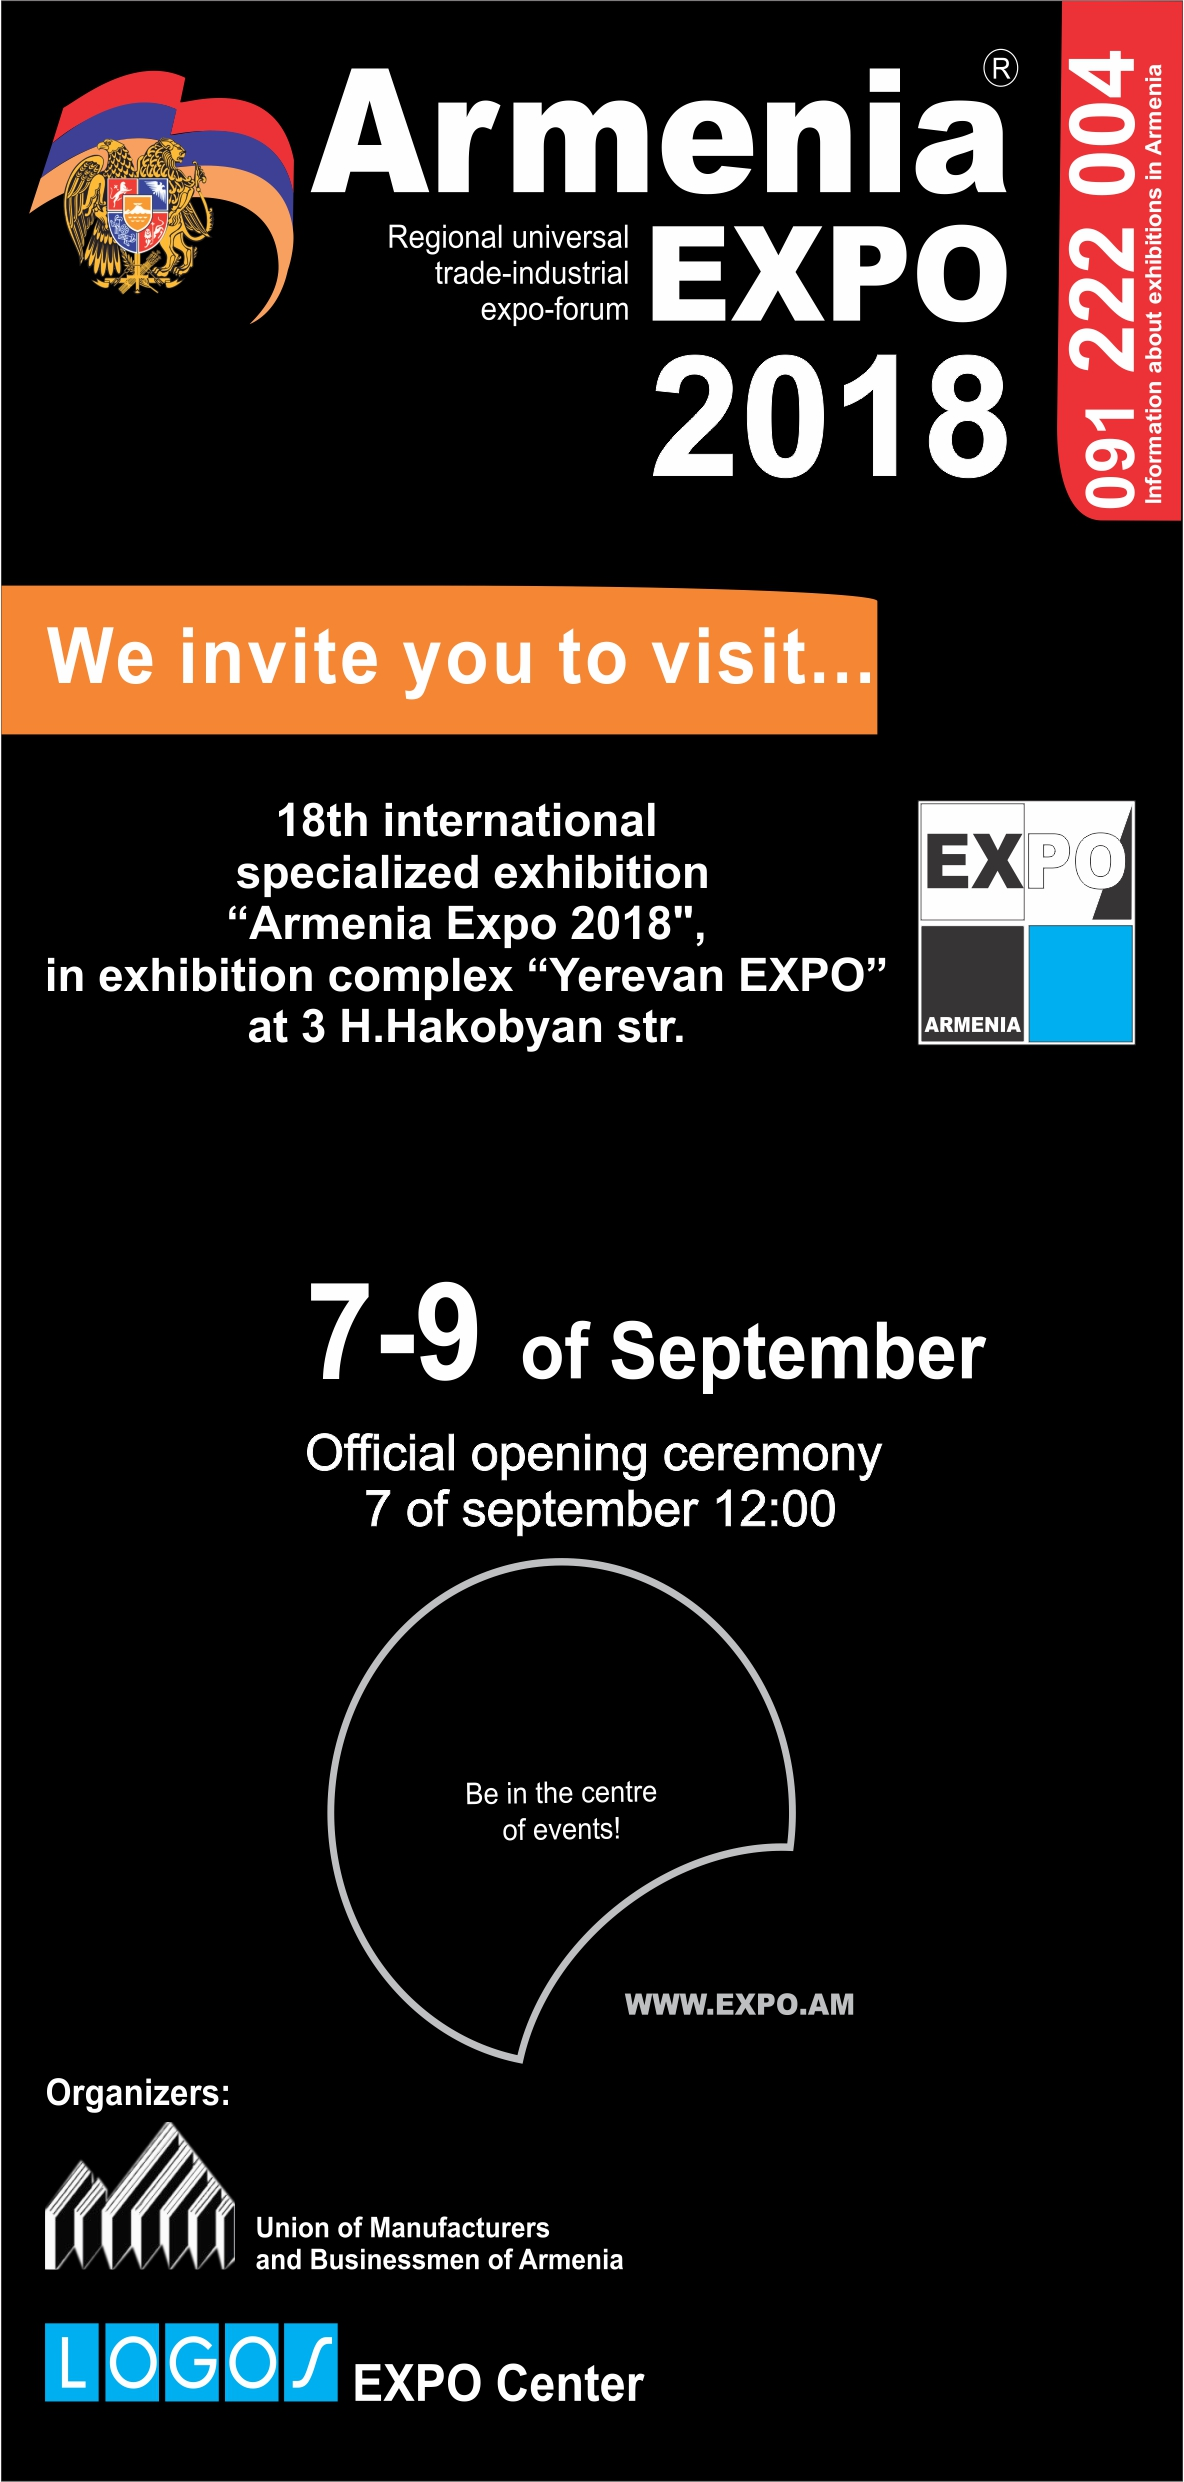 Armenia expo 2018 expo invitation card in the exhibition stopboris Image collections